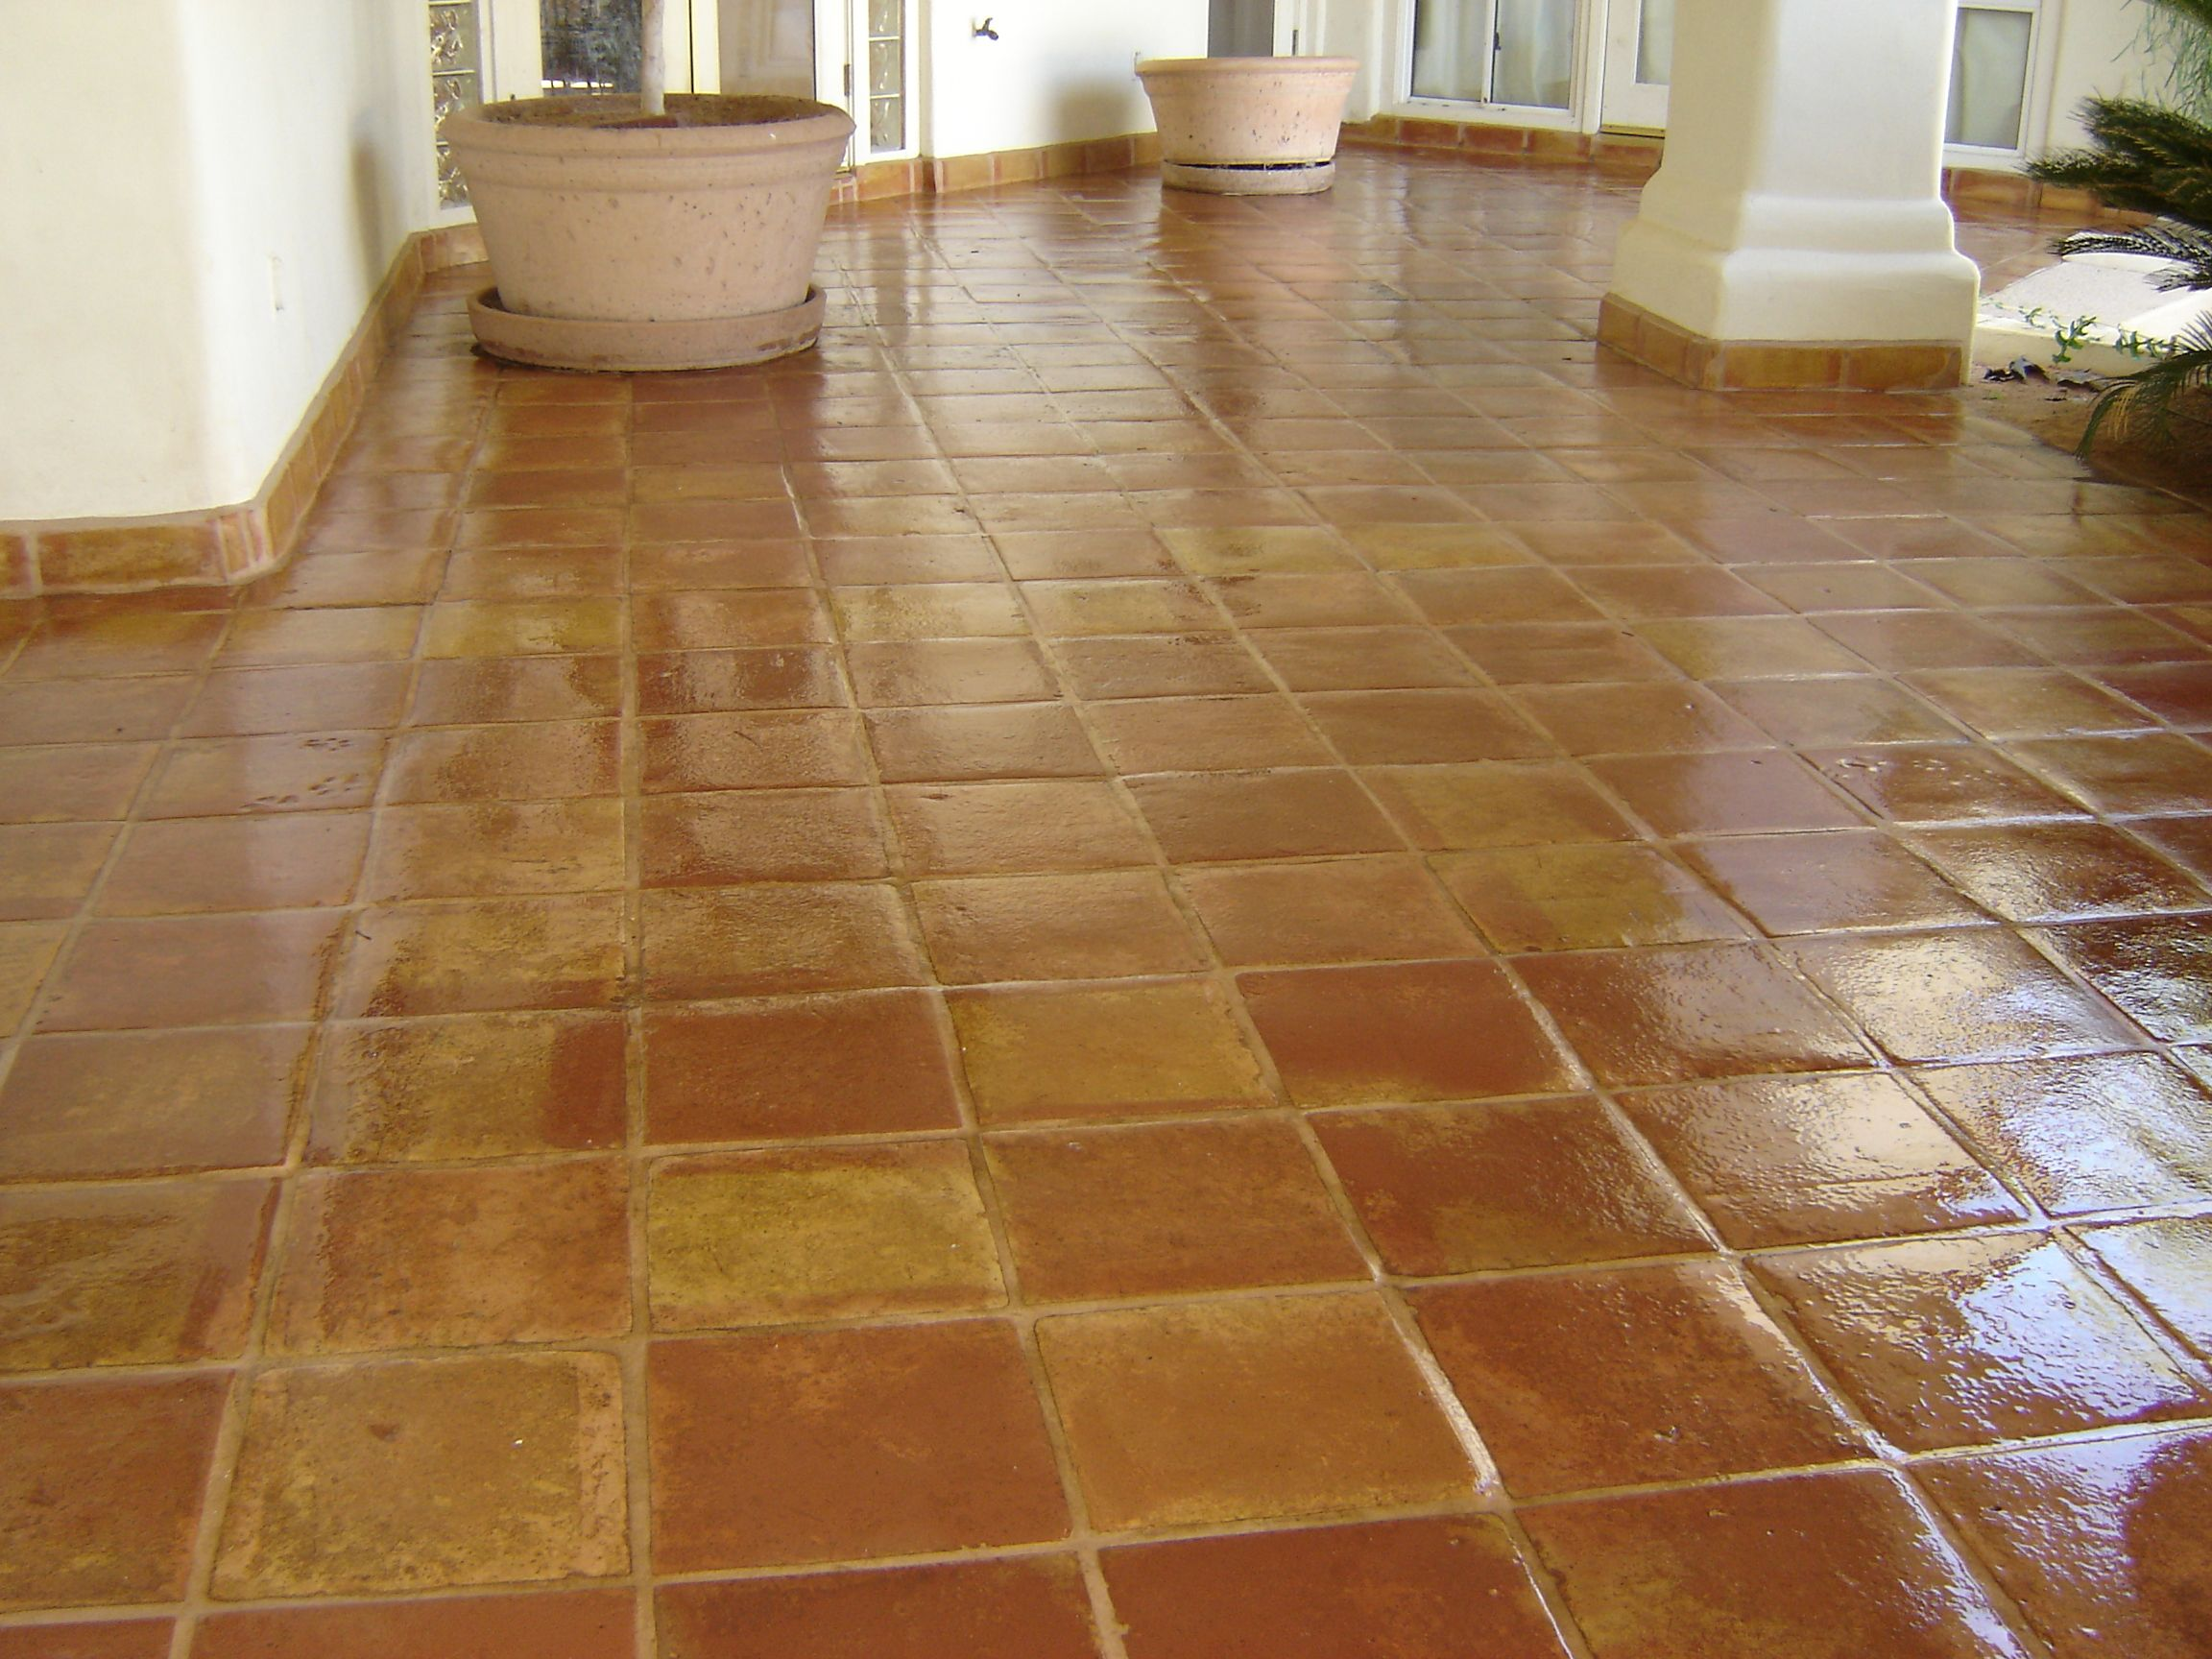 Saltillo tile saltillo saltillo mexican tile pinterest saltillo tile saltillo dailygadgetfo Image collections